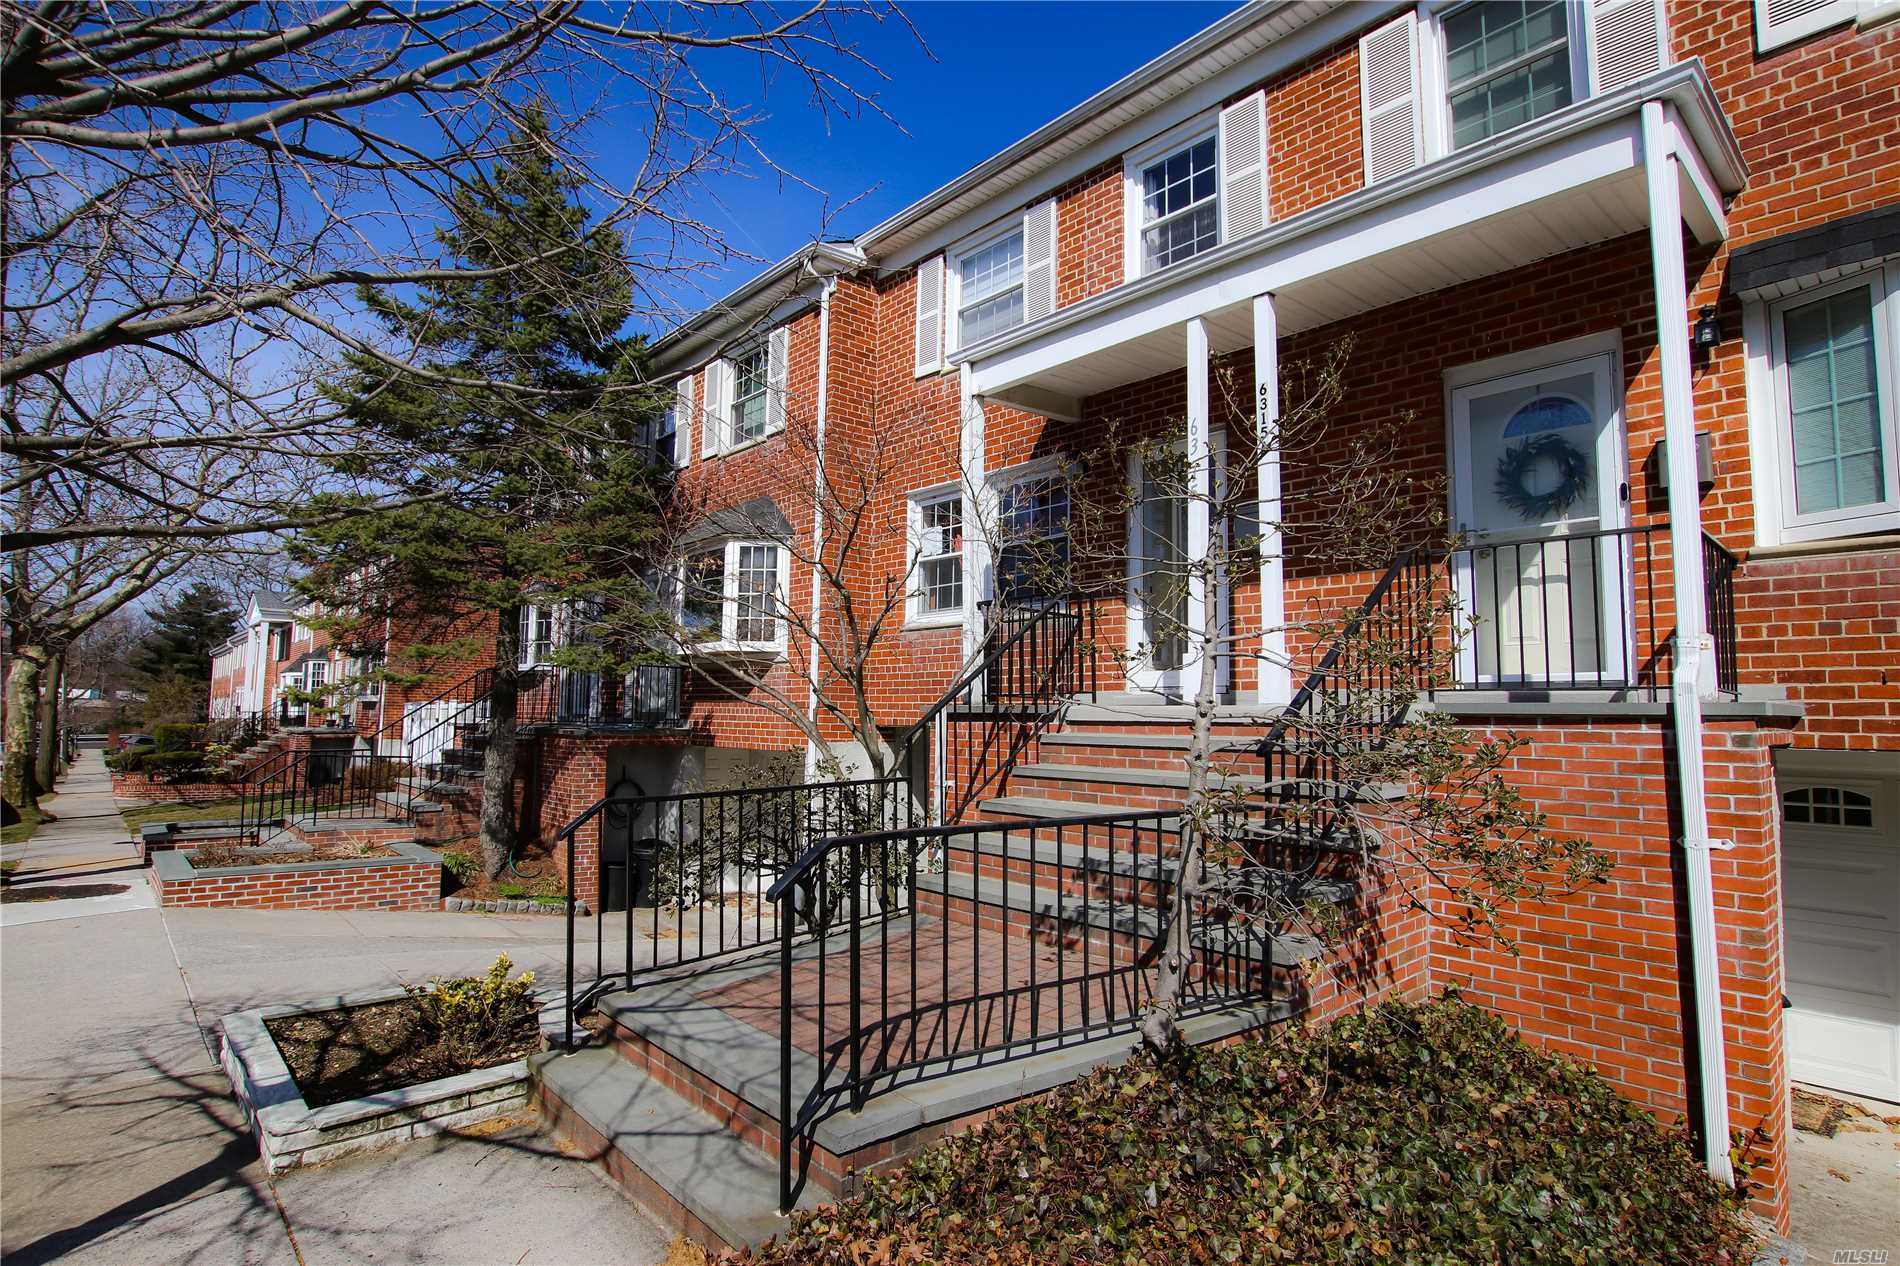 Solid Brick Triplex With New Roof, Private Pool Club, Playground, Private yard with attached garage. School District #26, 2 blocks from Bus to Flushing and Express Bus to Manhattan, 5 min drive to Douglaston LIRR station. Fairway Supermarket and movie theater nearby.